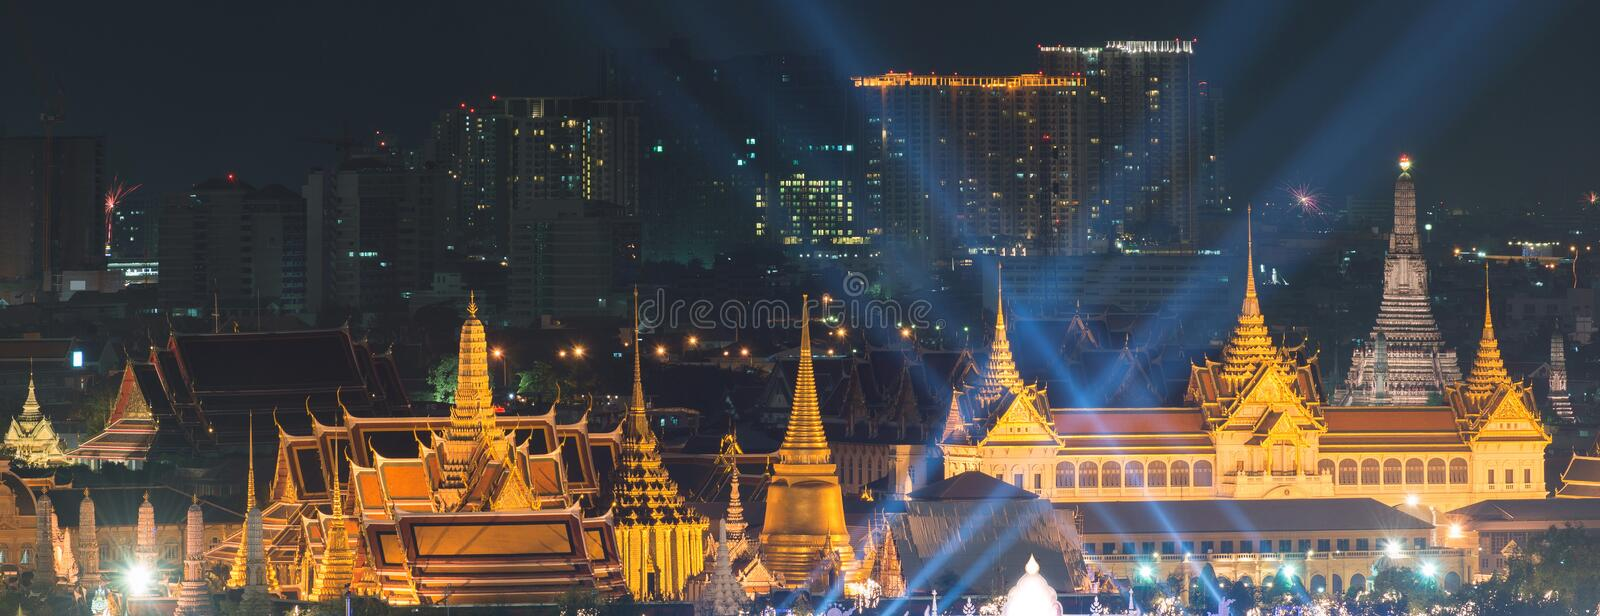 Fireworks on Father`s day at Emerald Buddha, Bangkok, Thailand royalty free stock photos